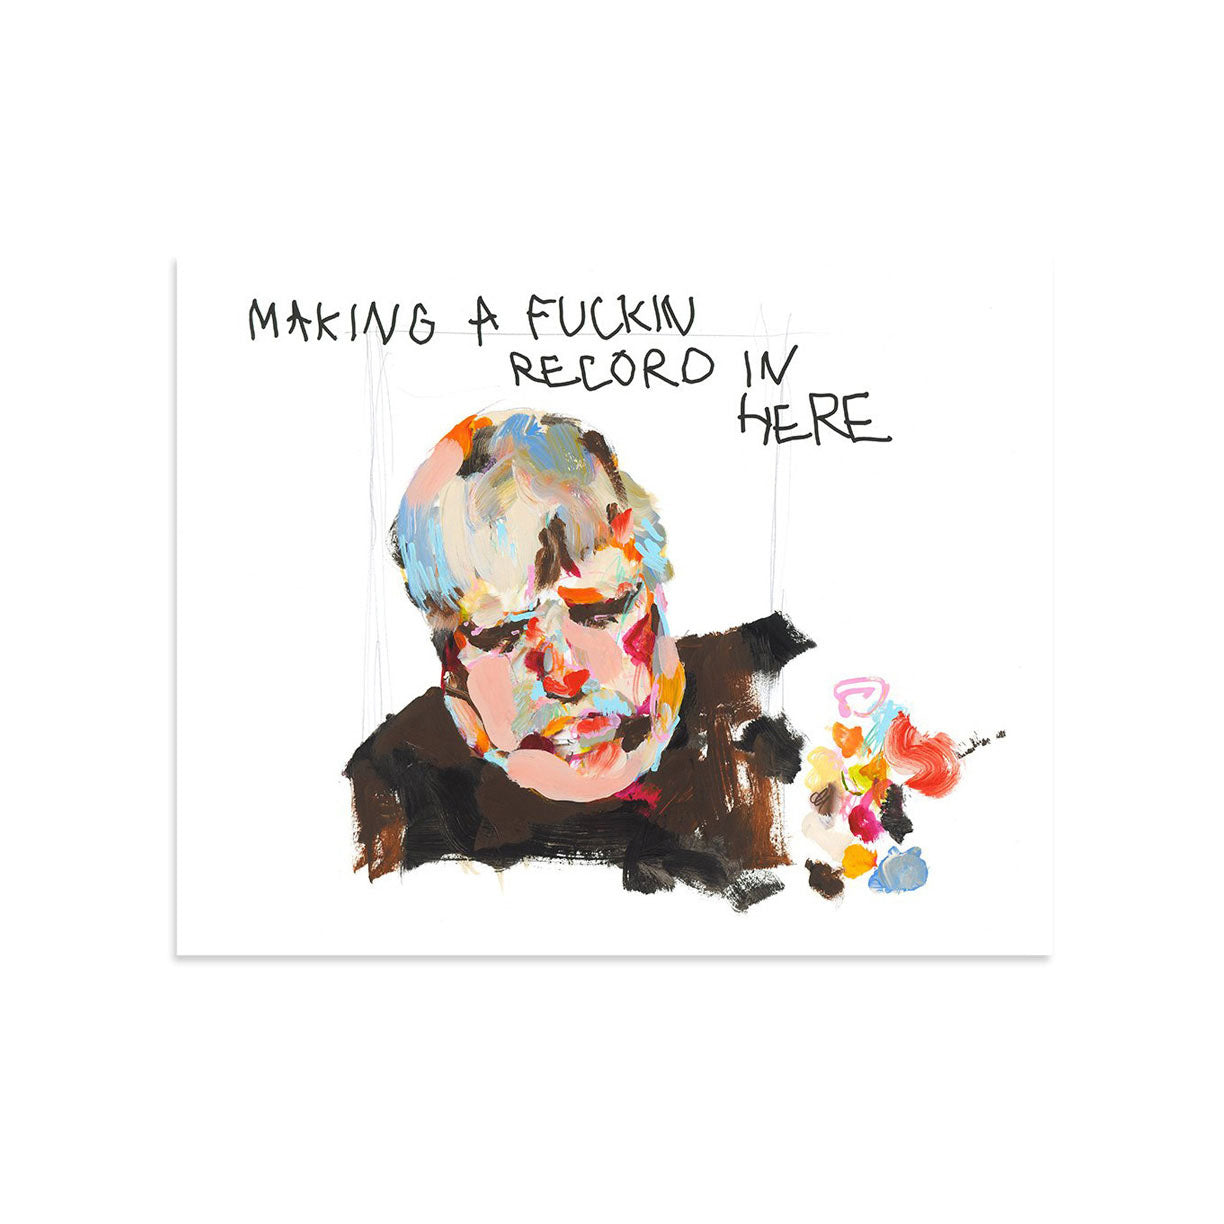 Making a Fucking Record in Here by Hannah Hooper | Print | Poster Child Prints